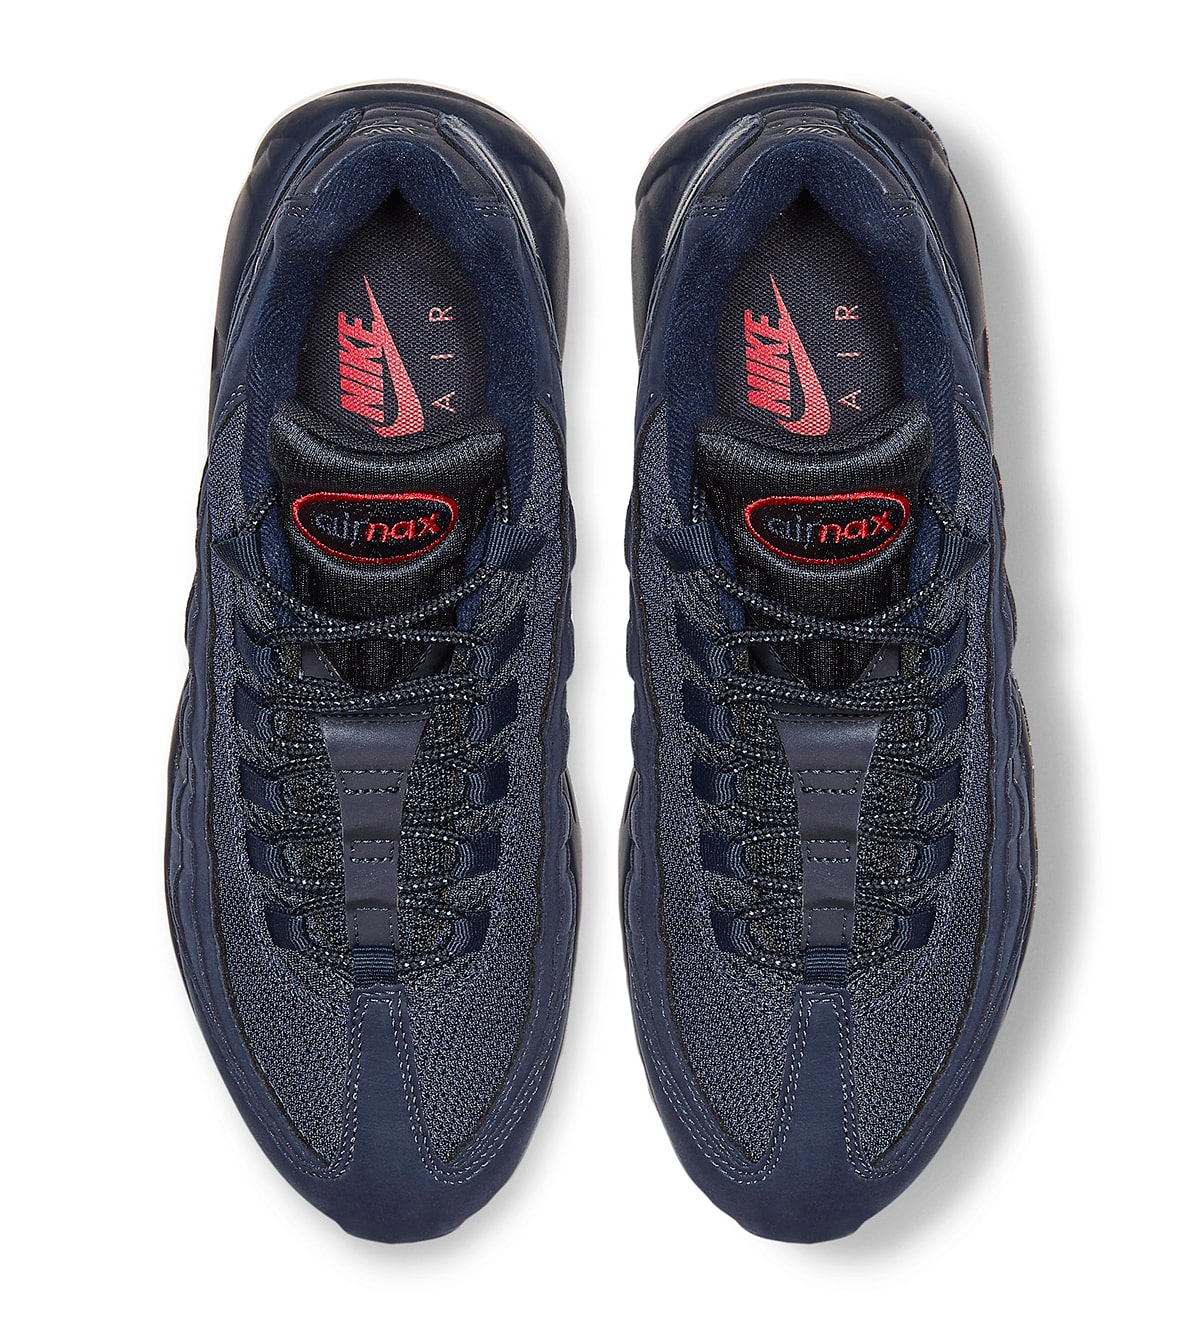 Available Now The Nike Air Max 95 Looks Nice in Navy